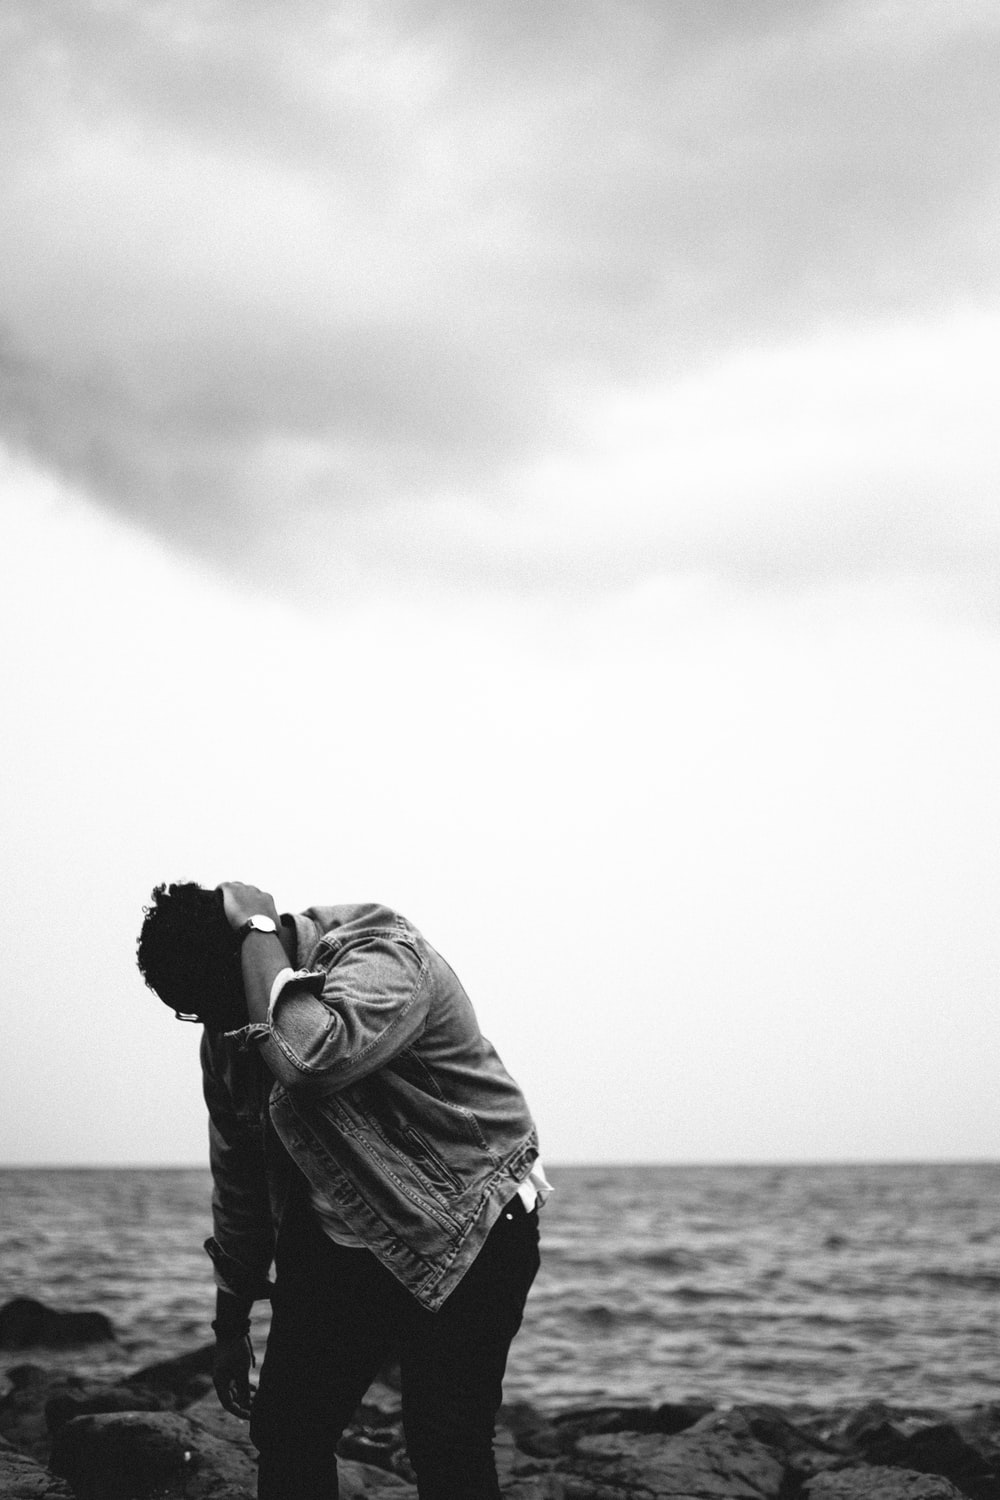 grayscale photography of person looking down at rocks